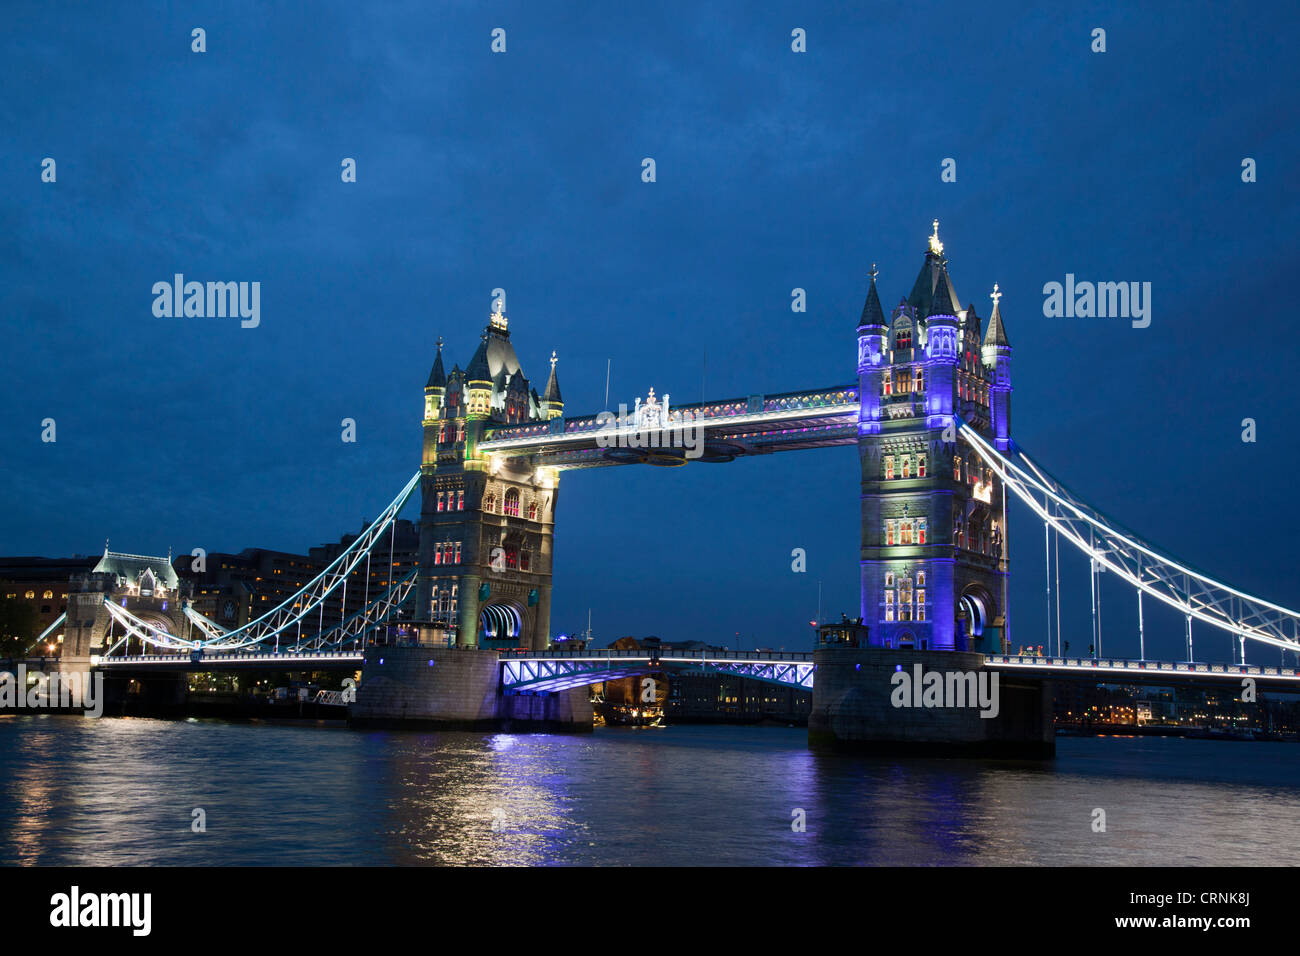 Illuminated Tower Bridge and the River Thames with colourful lighting display Stock Photo